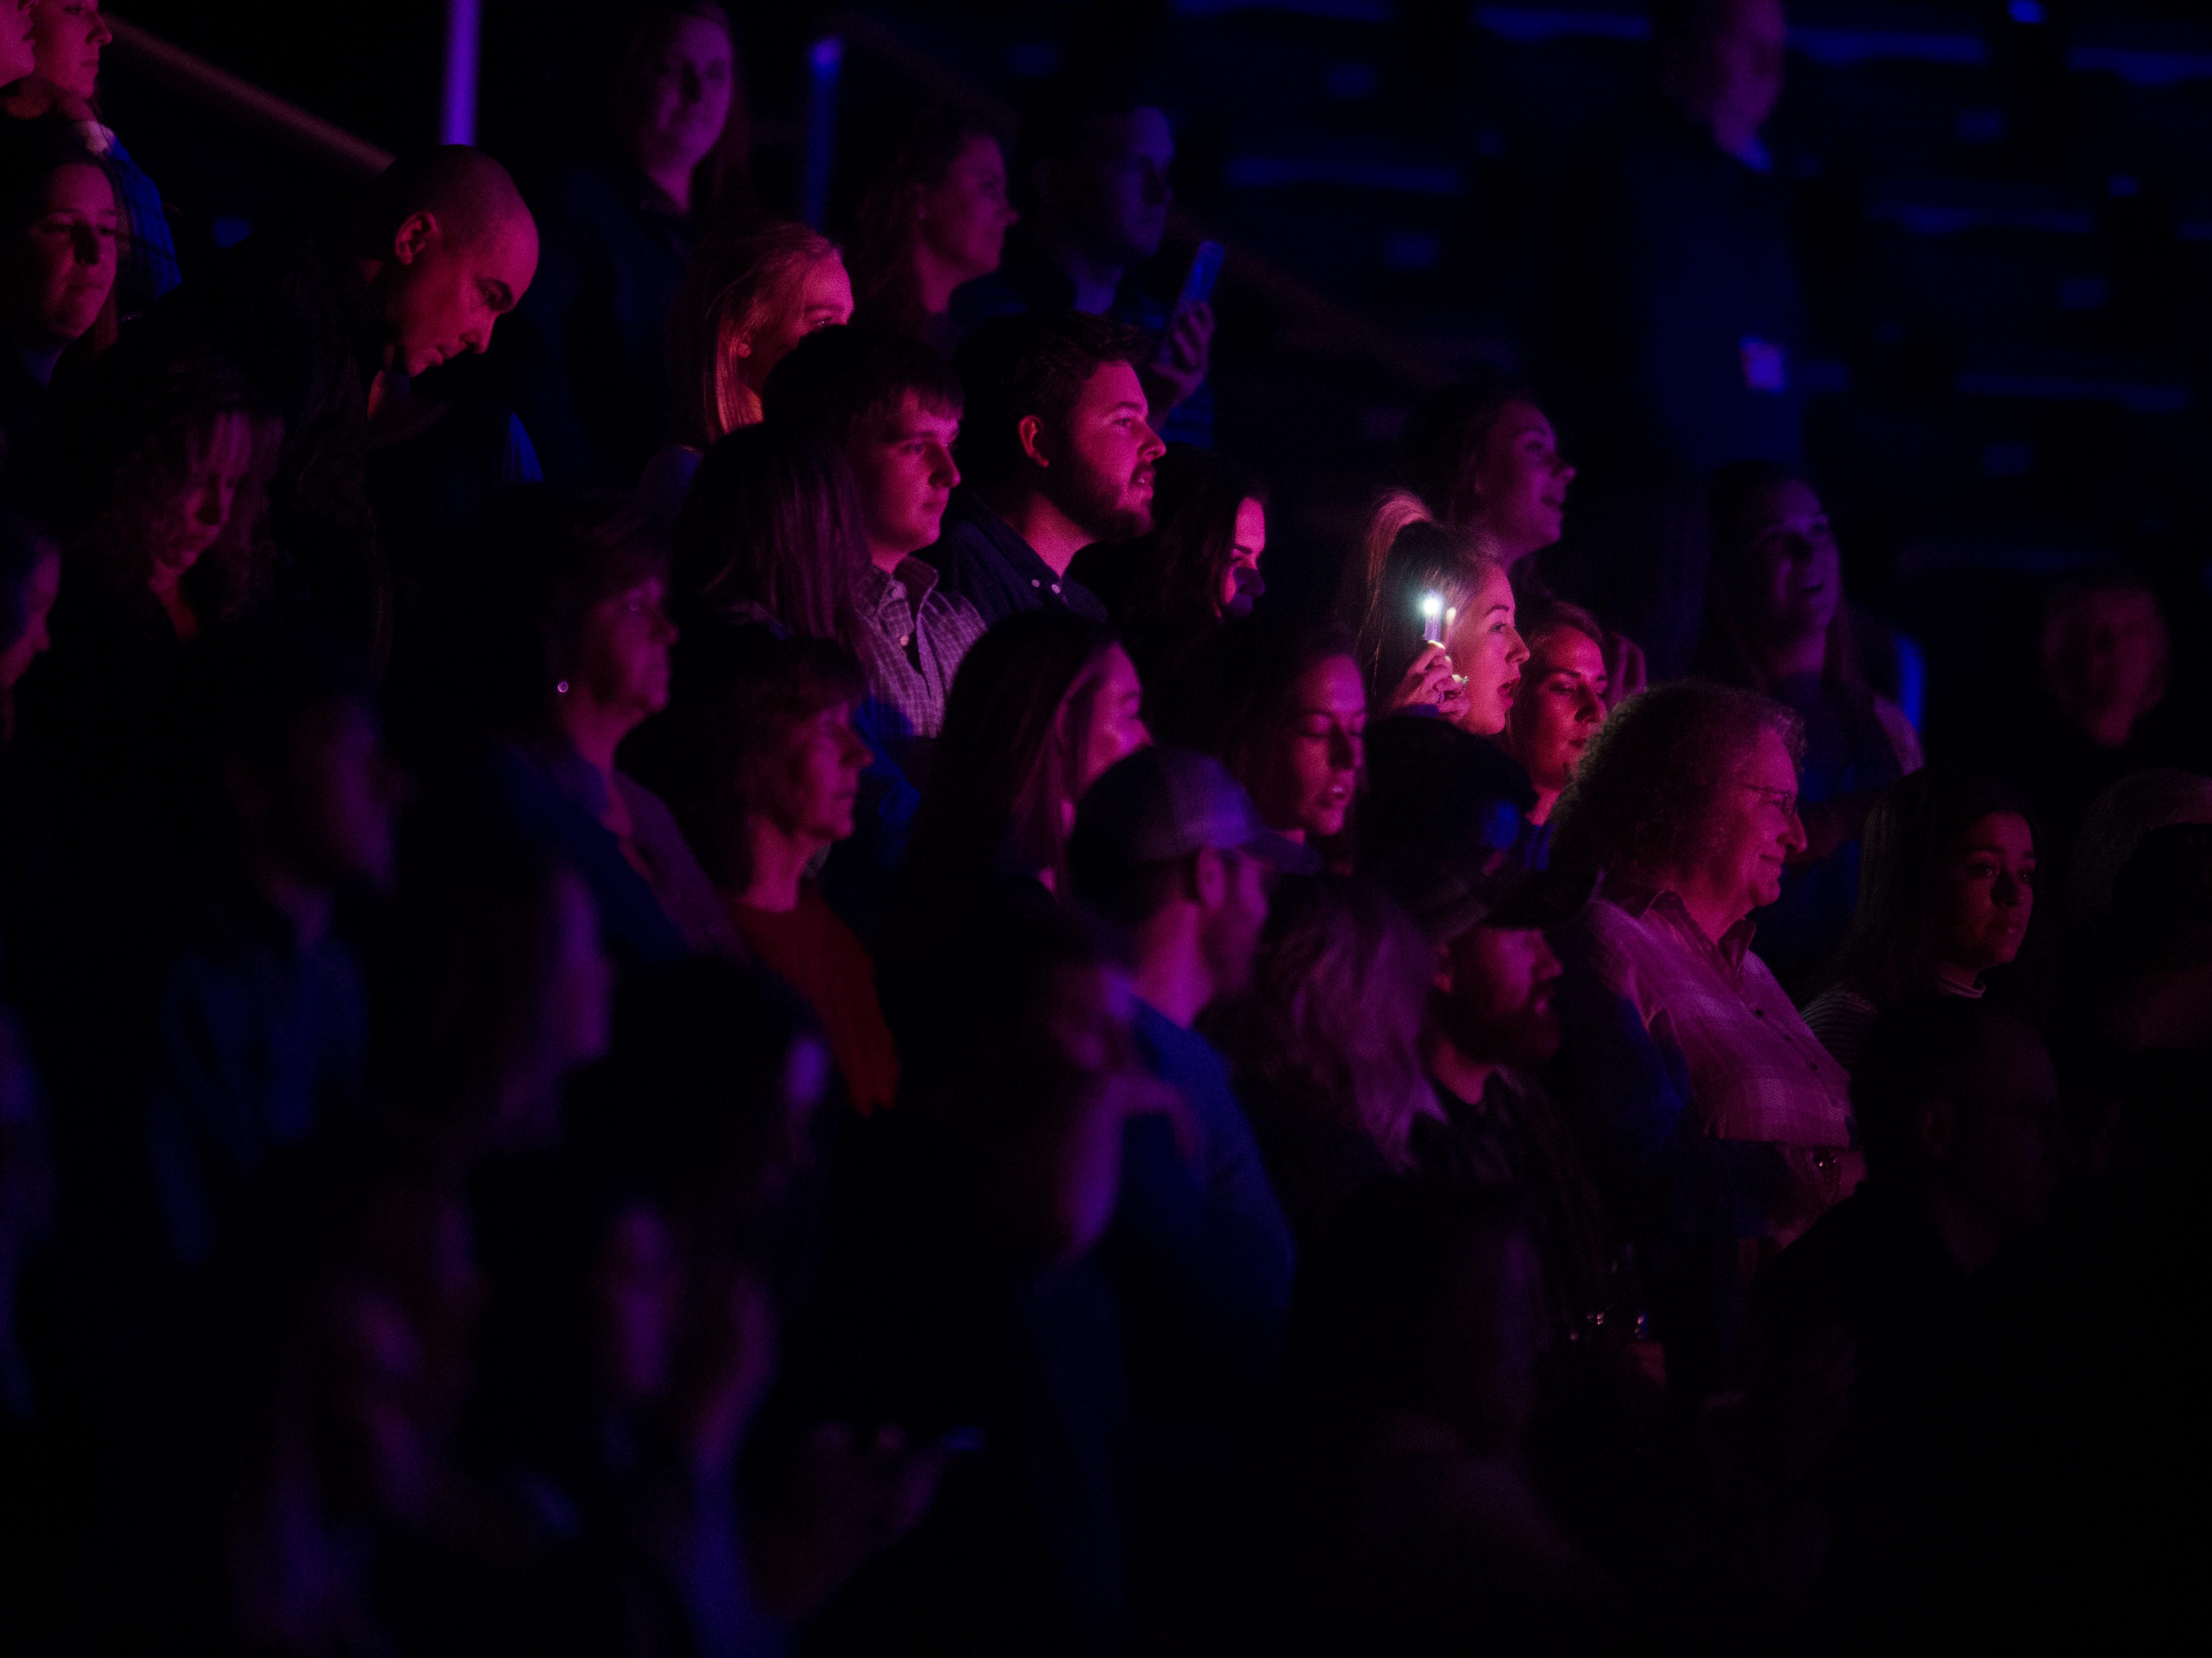 Fans listen to Dan + Shay, who opened for a Chris Young concert at Thompson-Boling Arena, which also featured opener Morgan Evans,Thursday Nov. 29, 2018.